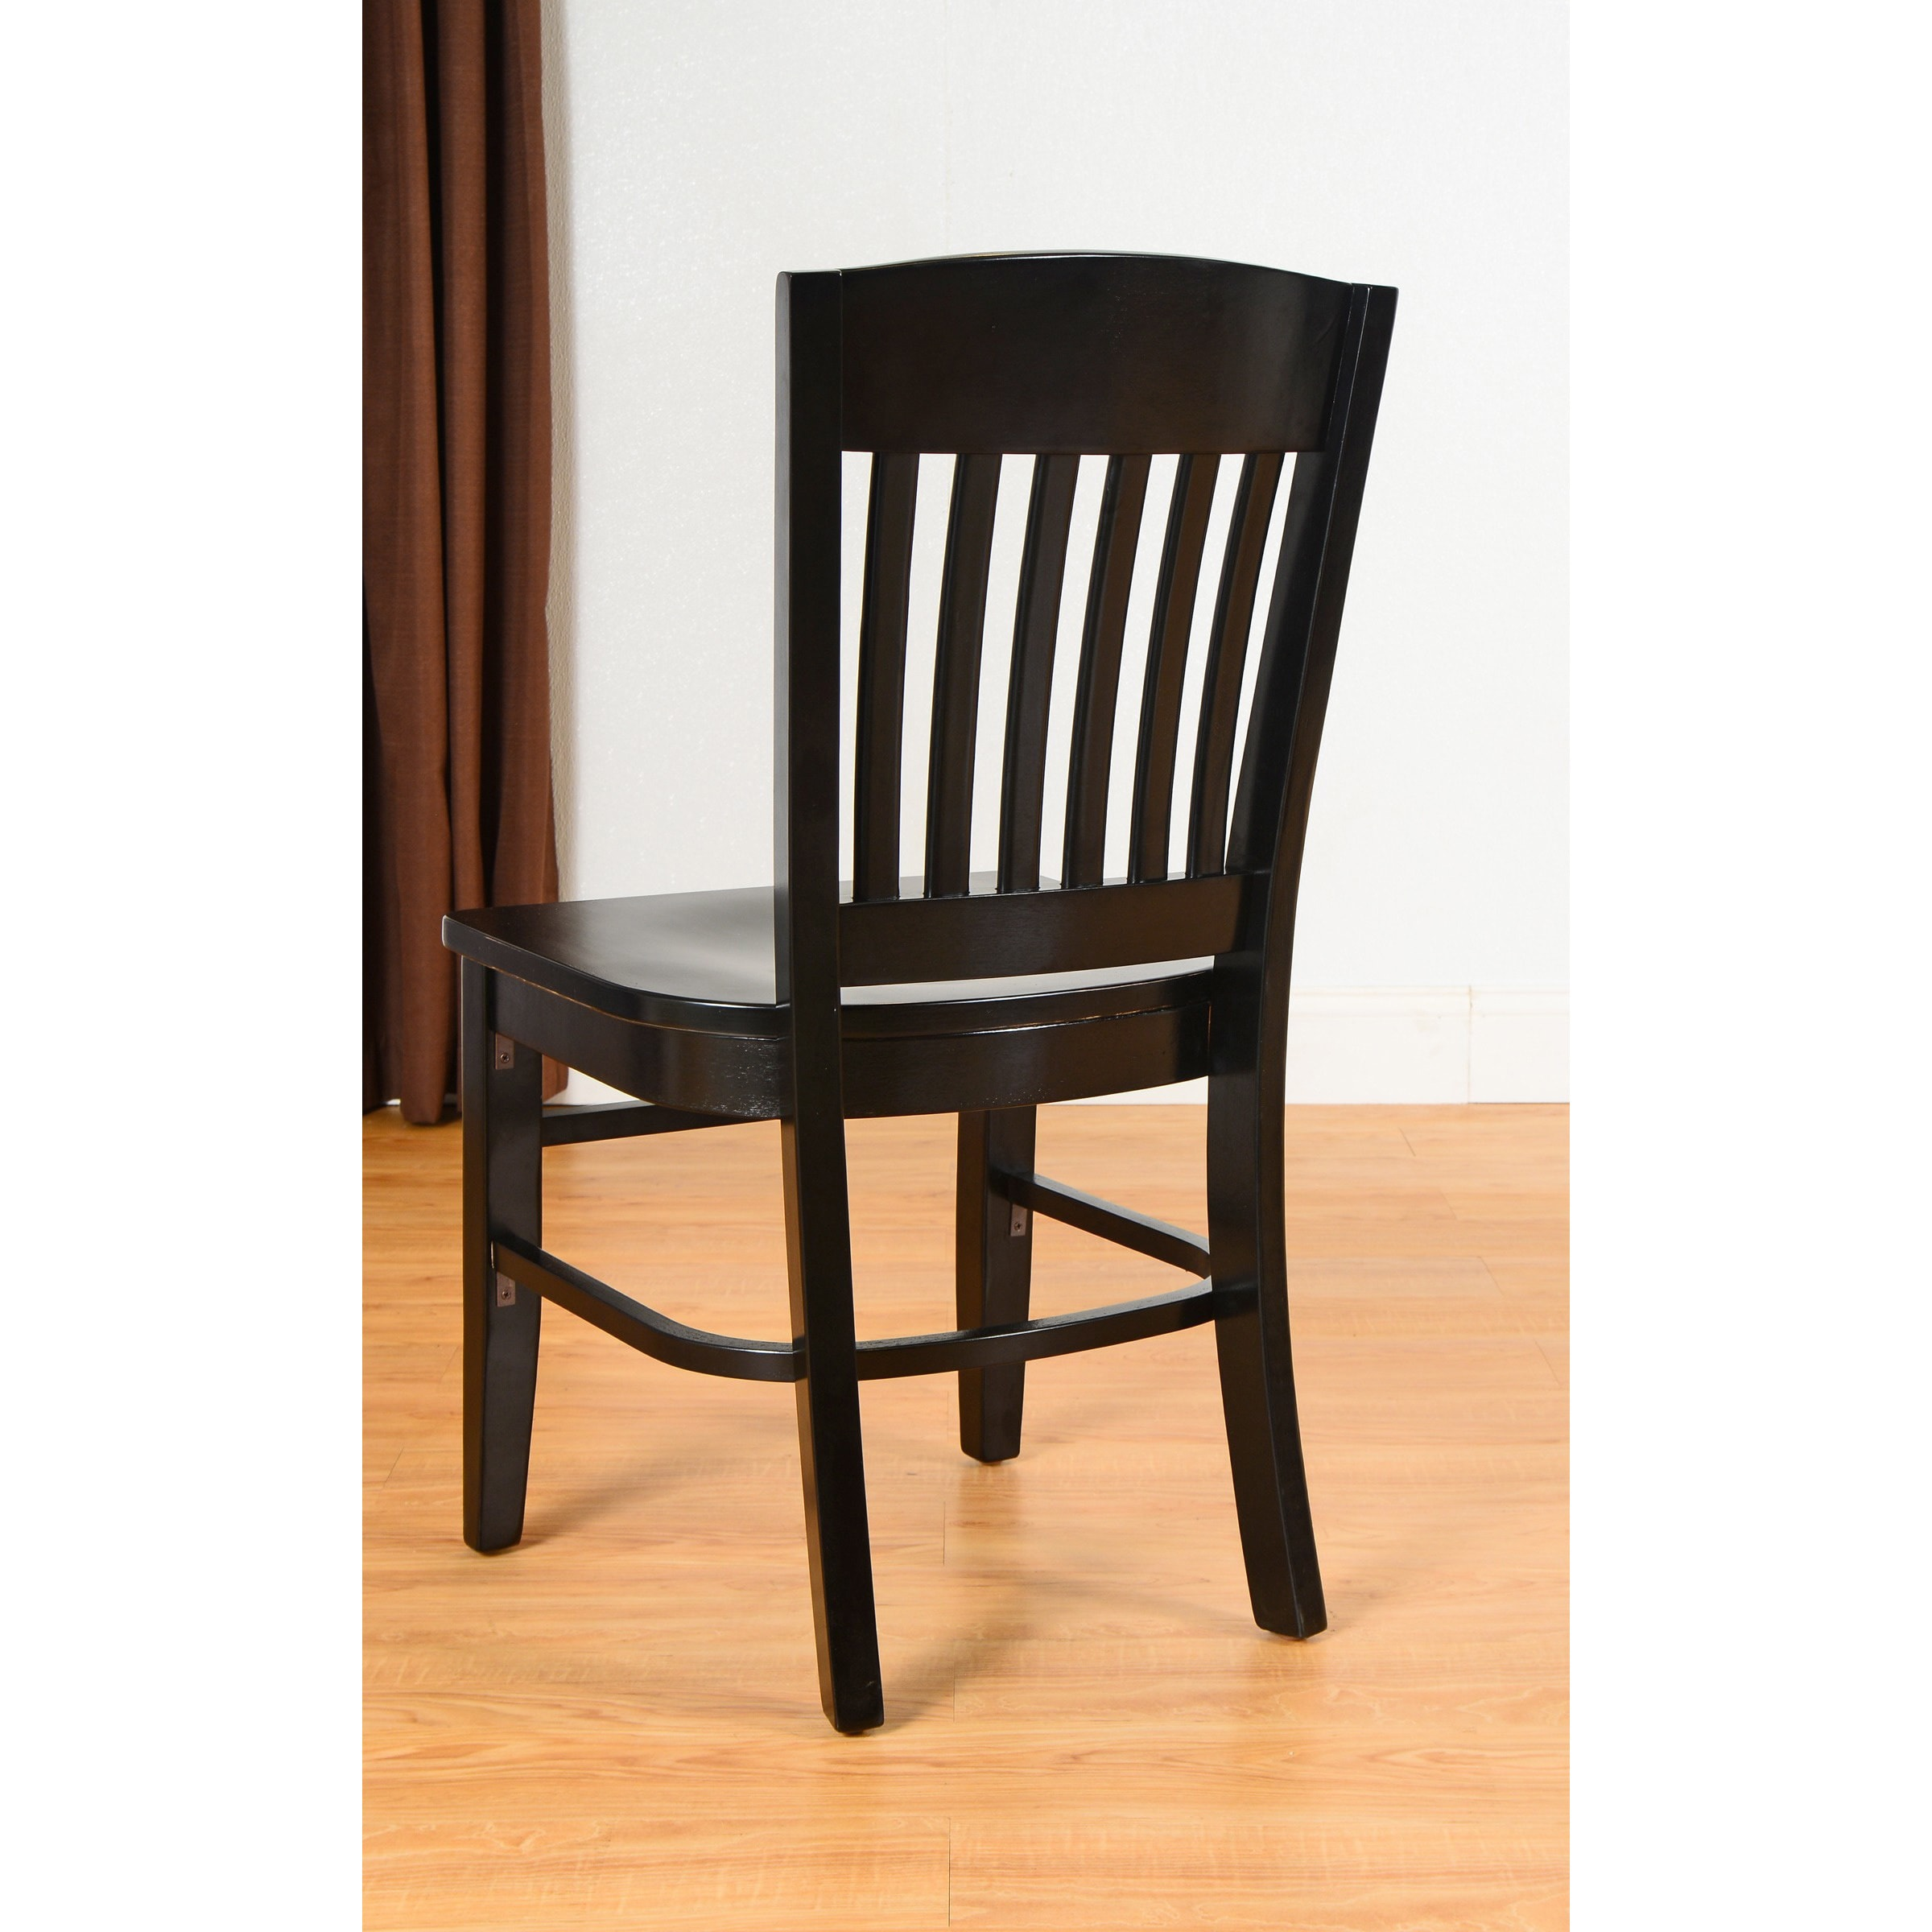 Shop Copper Grove Blackbird Solid Wood School Chairs - On Sale - Free Shipping Today - Overstock.com - 20461156  sc 1 st  Overstock.com & Shop Copper Grove Blackbird Solid Wood School Chairs - On Sale ...